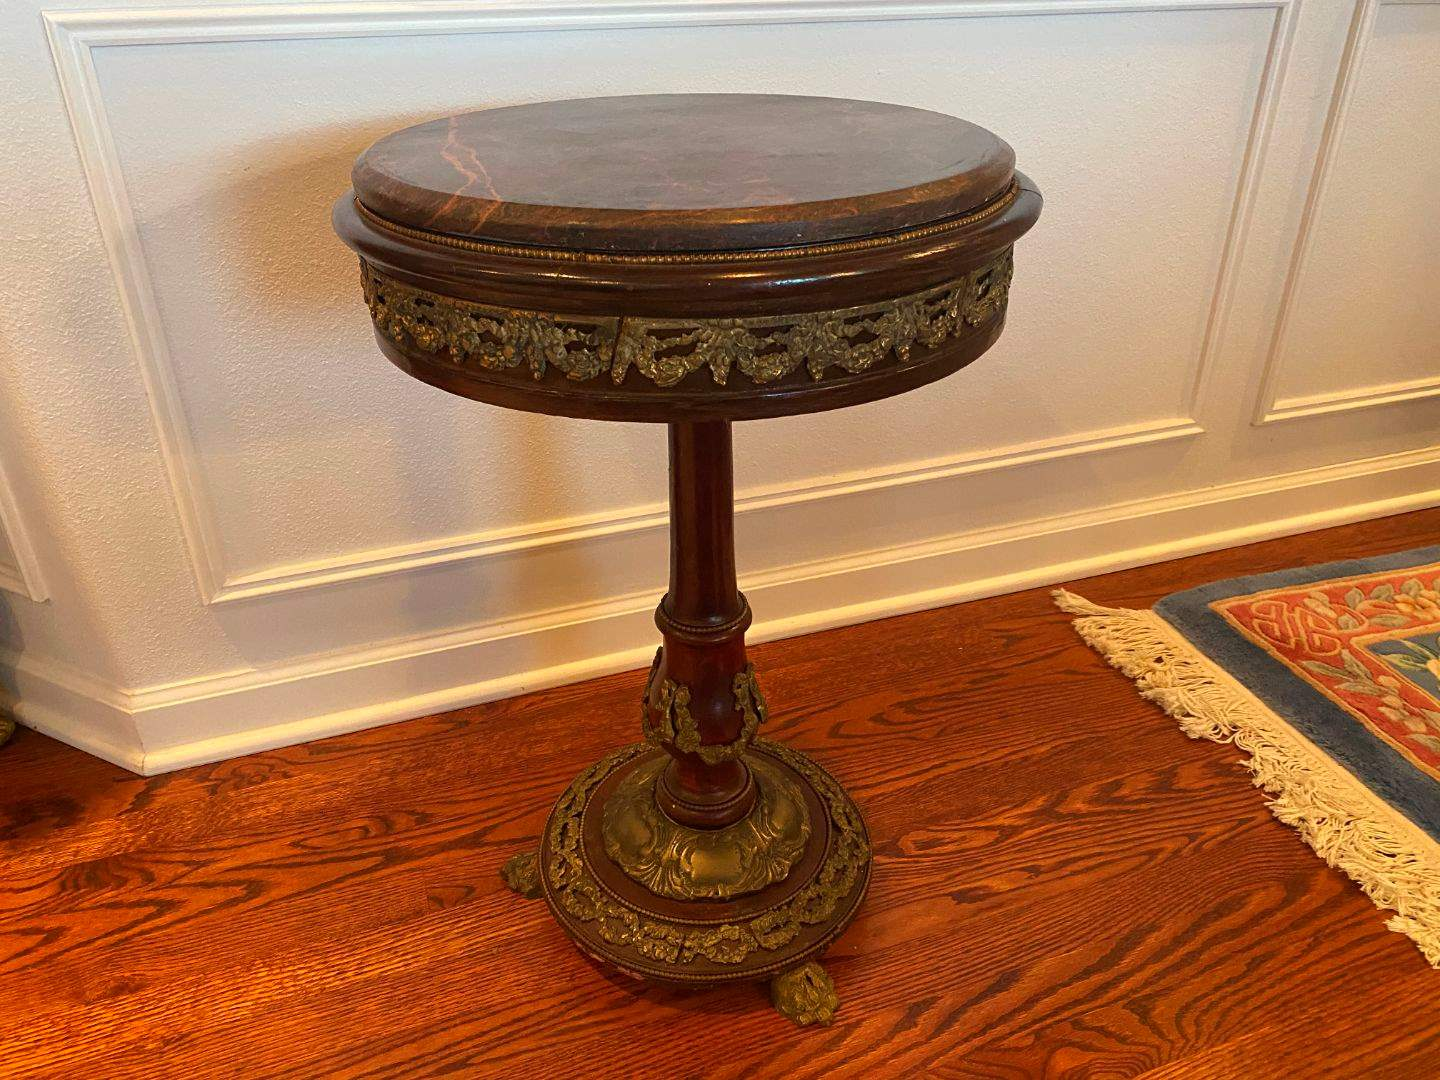 Lot # 100 - Vintage French Louis XV Style Marble Top Wood Side Table w/Brass Accents  (main image)